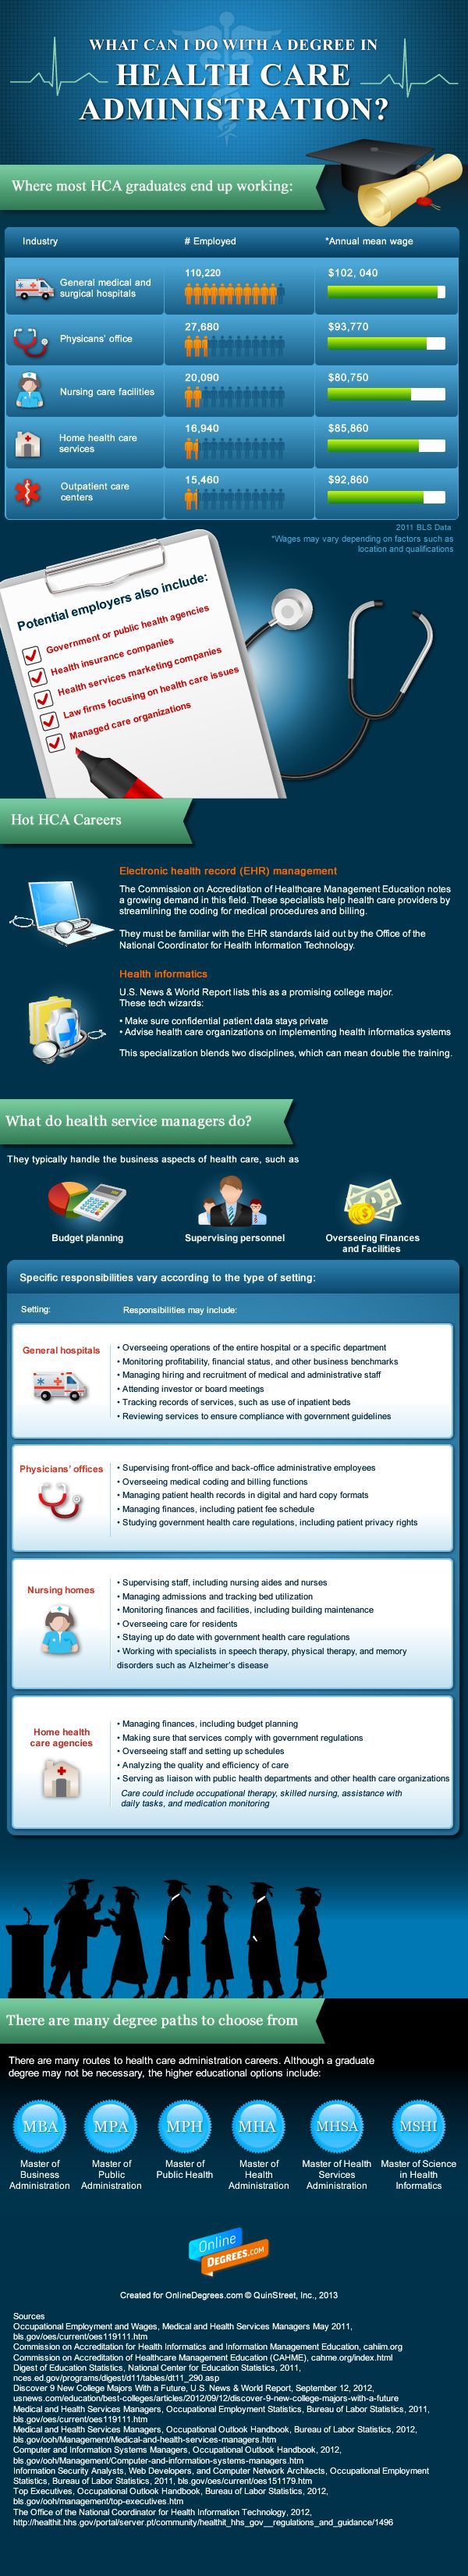 Pin By Annie Rose Favreau On Career Ideas Healthcare Administration Health Information Management Medical Jobs